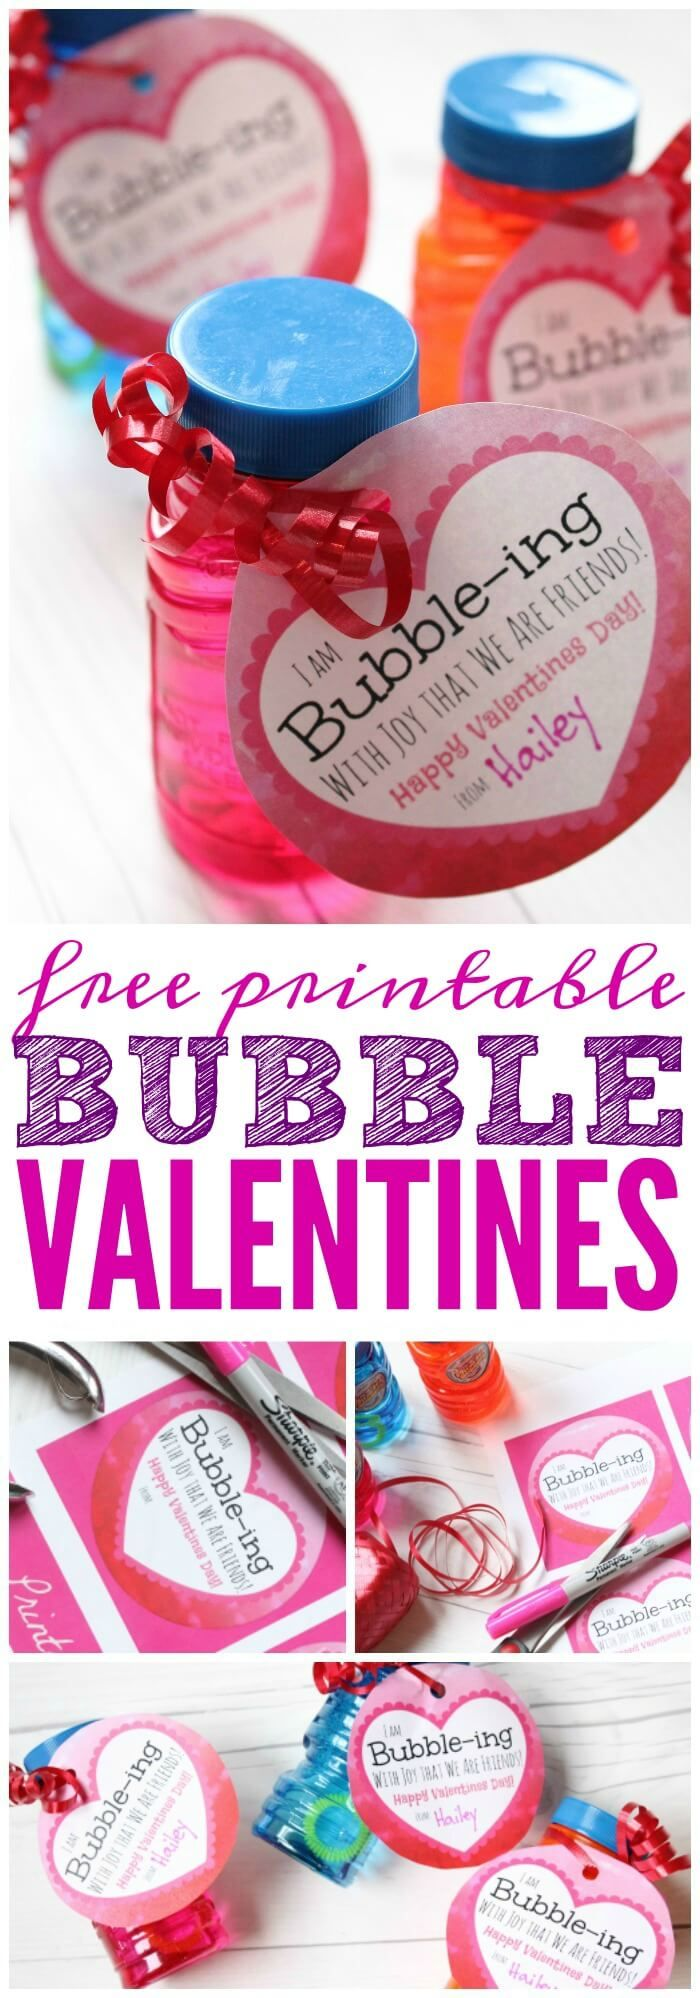 Bubbles Valentine Printable! A FREE Printable Valentines Day Idea that is candy ...